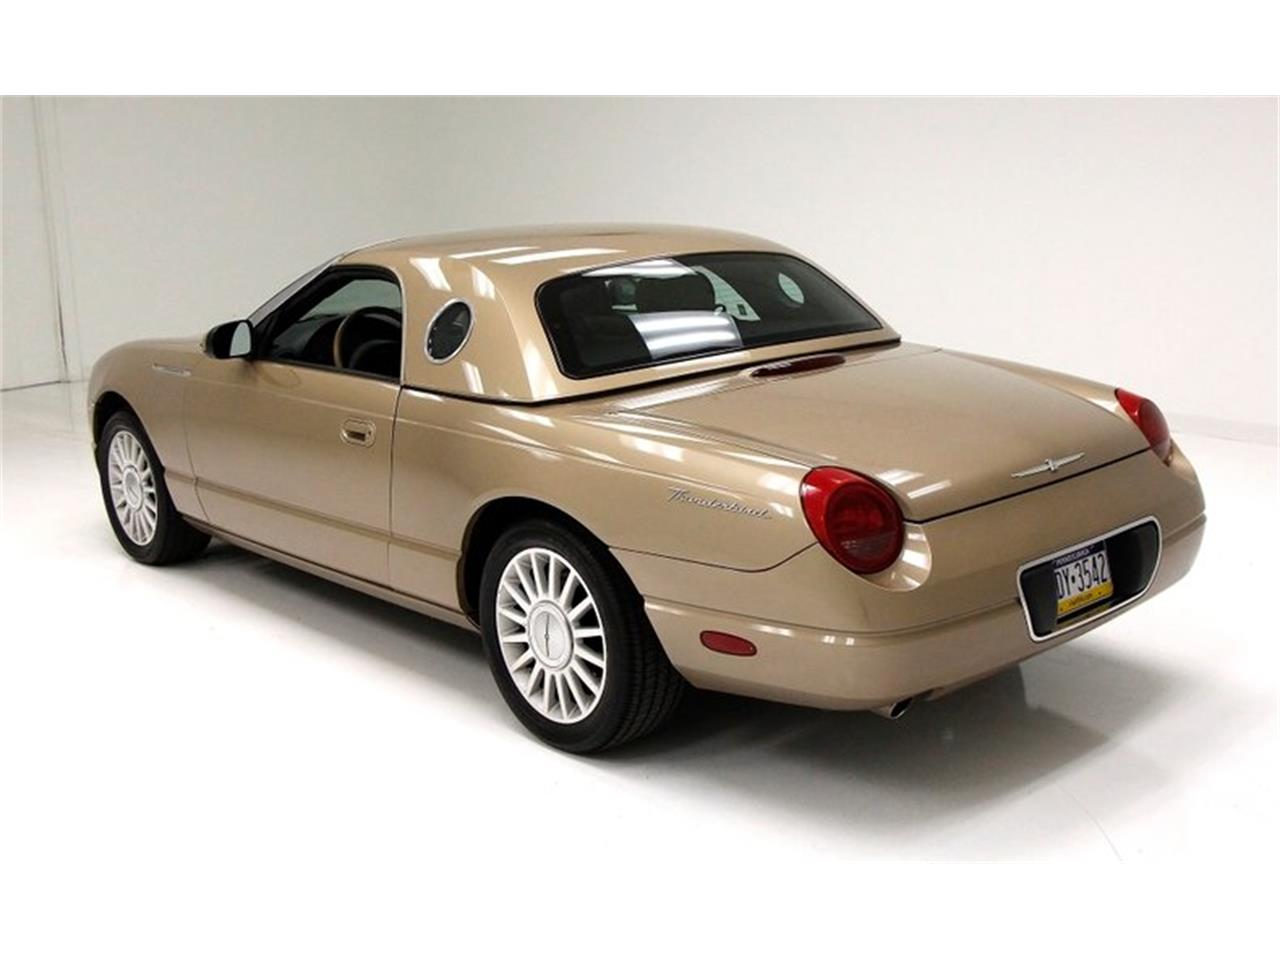 Large Picture of 2005 Ford Thunderbird located in Morgantown Pennsylvania - $16,500.00 - Q6CY